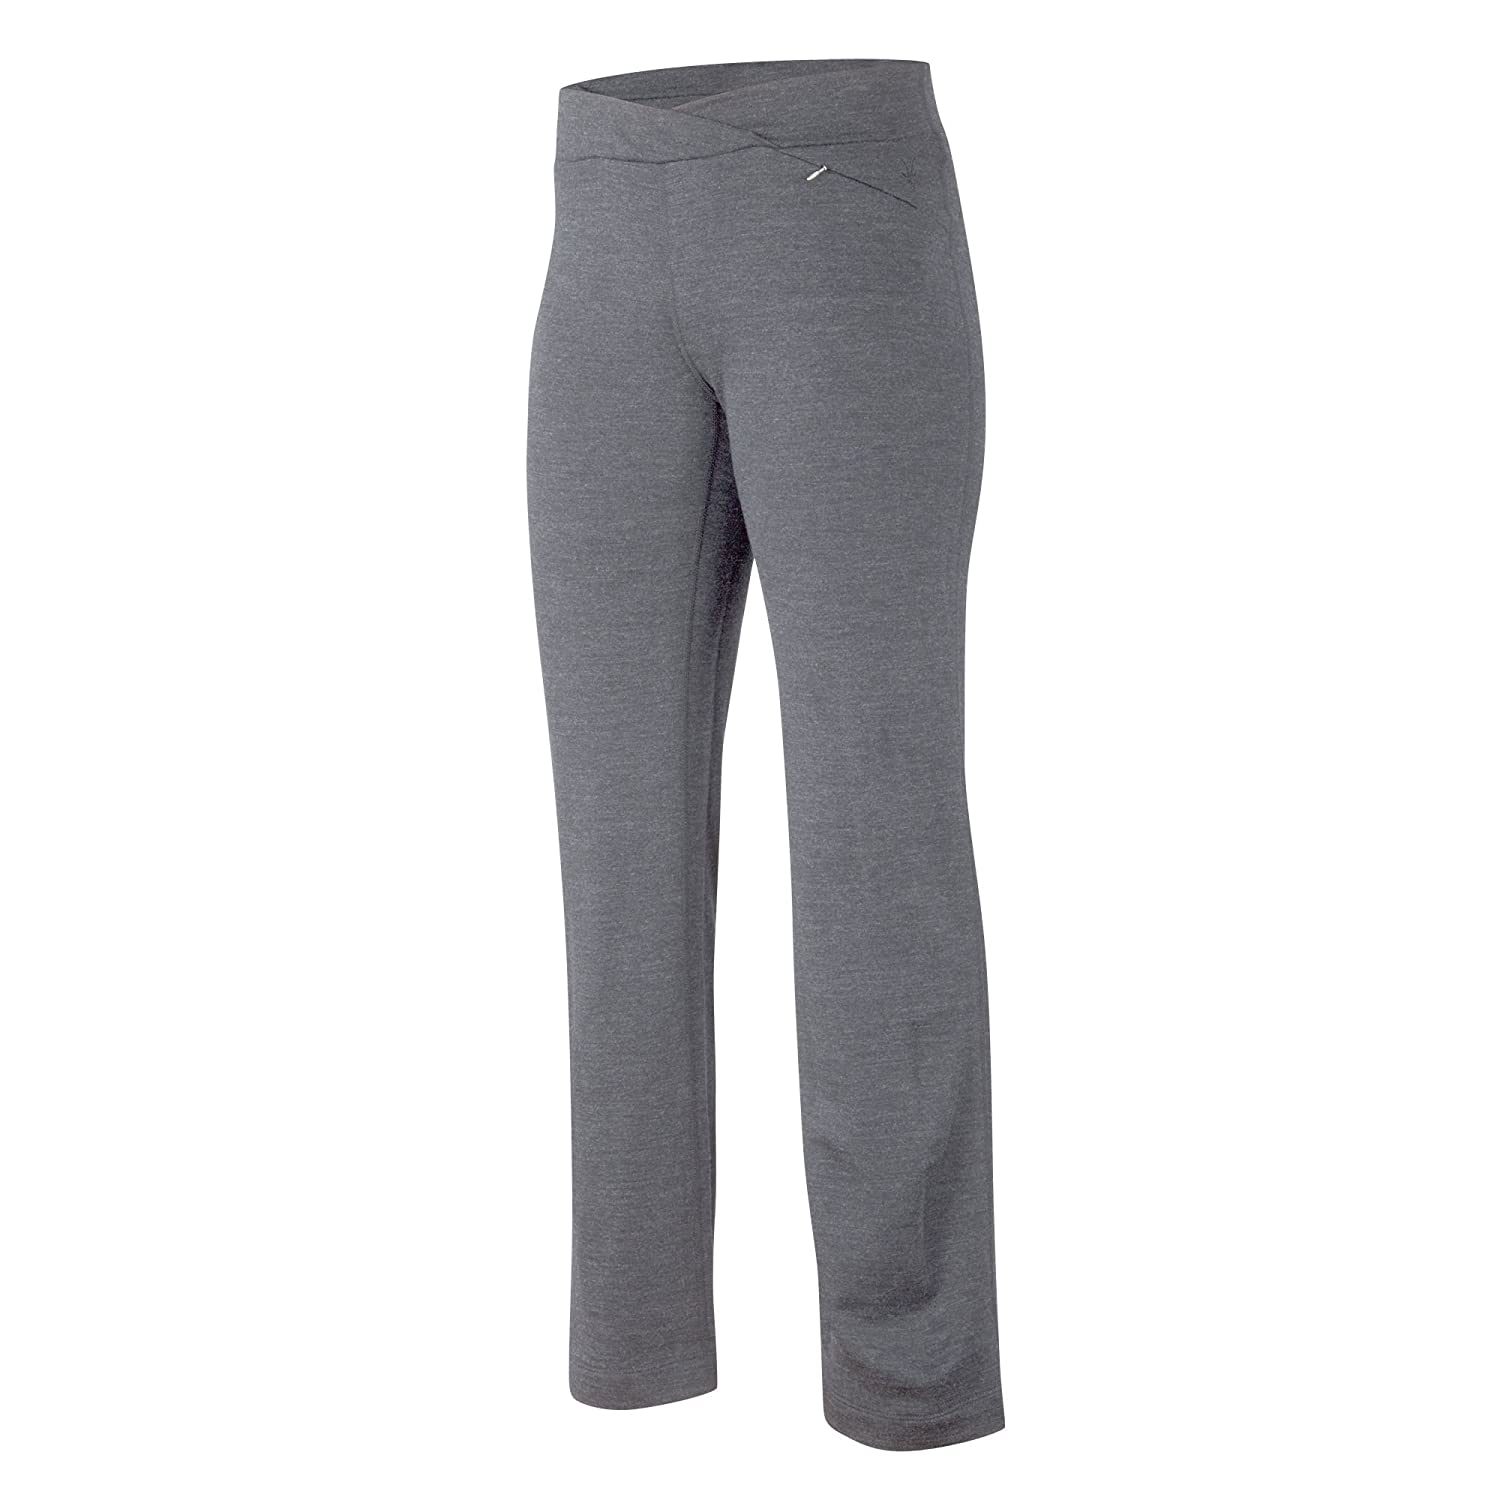 Ibex Outdoor Clothing Latitude Lounge Pants cheap vastesiworld